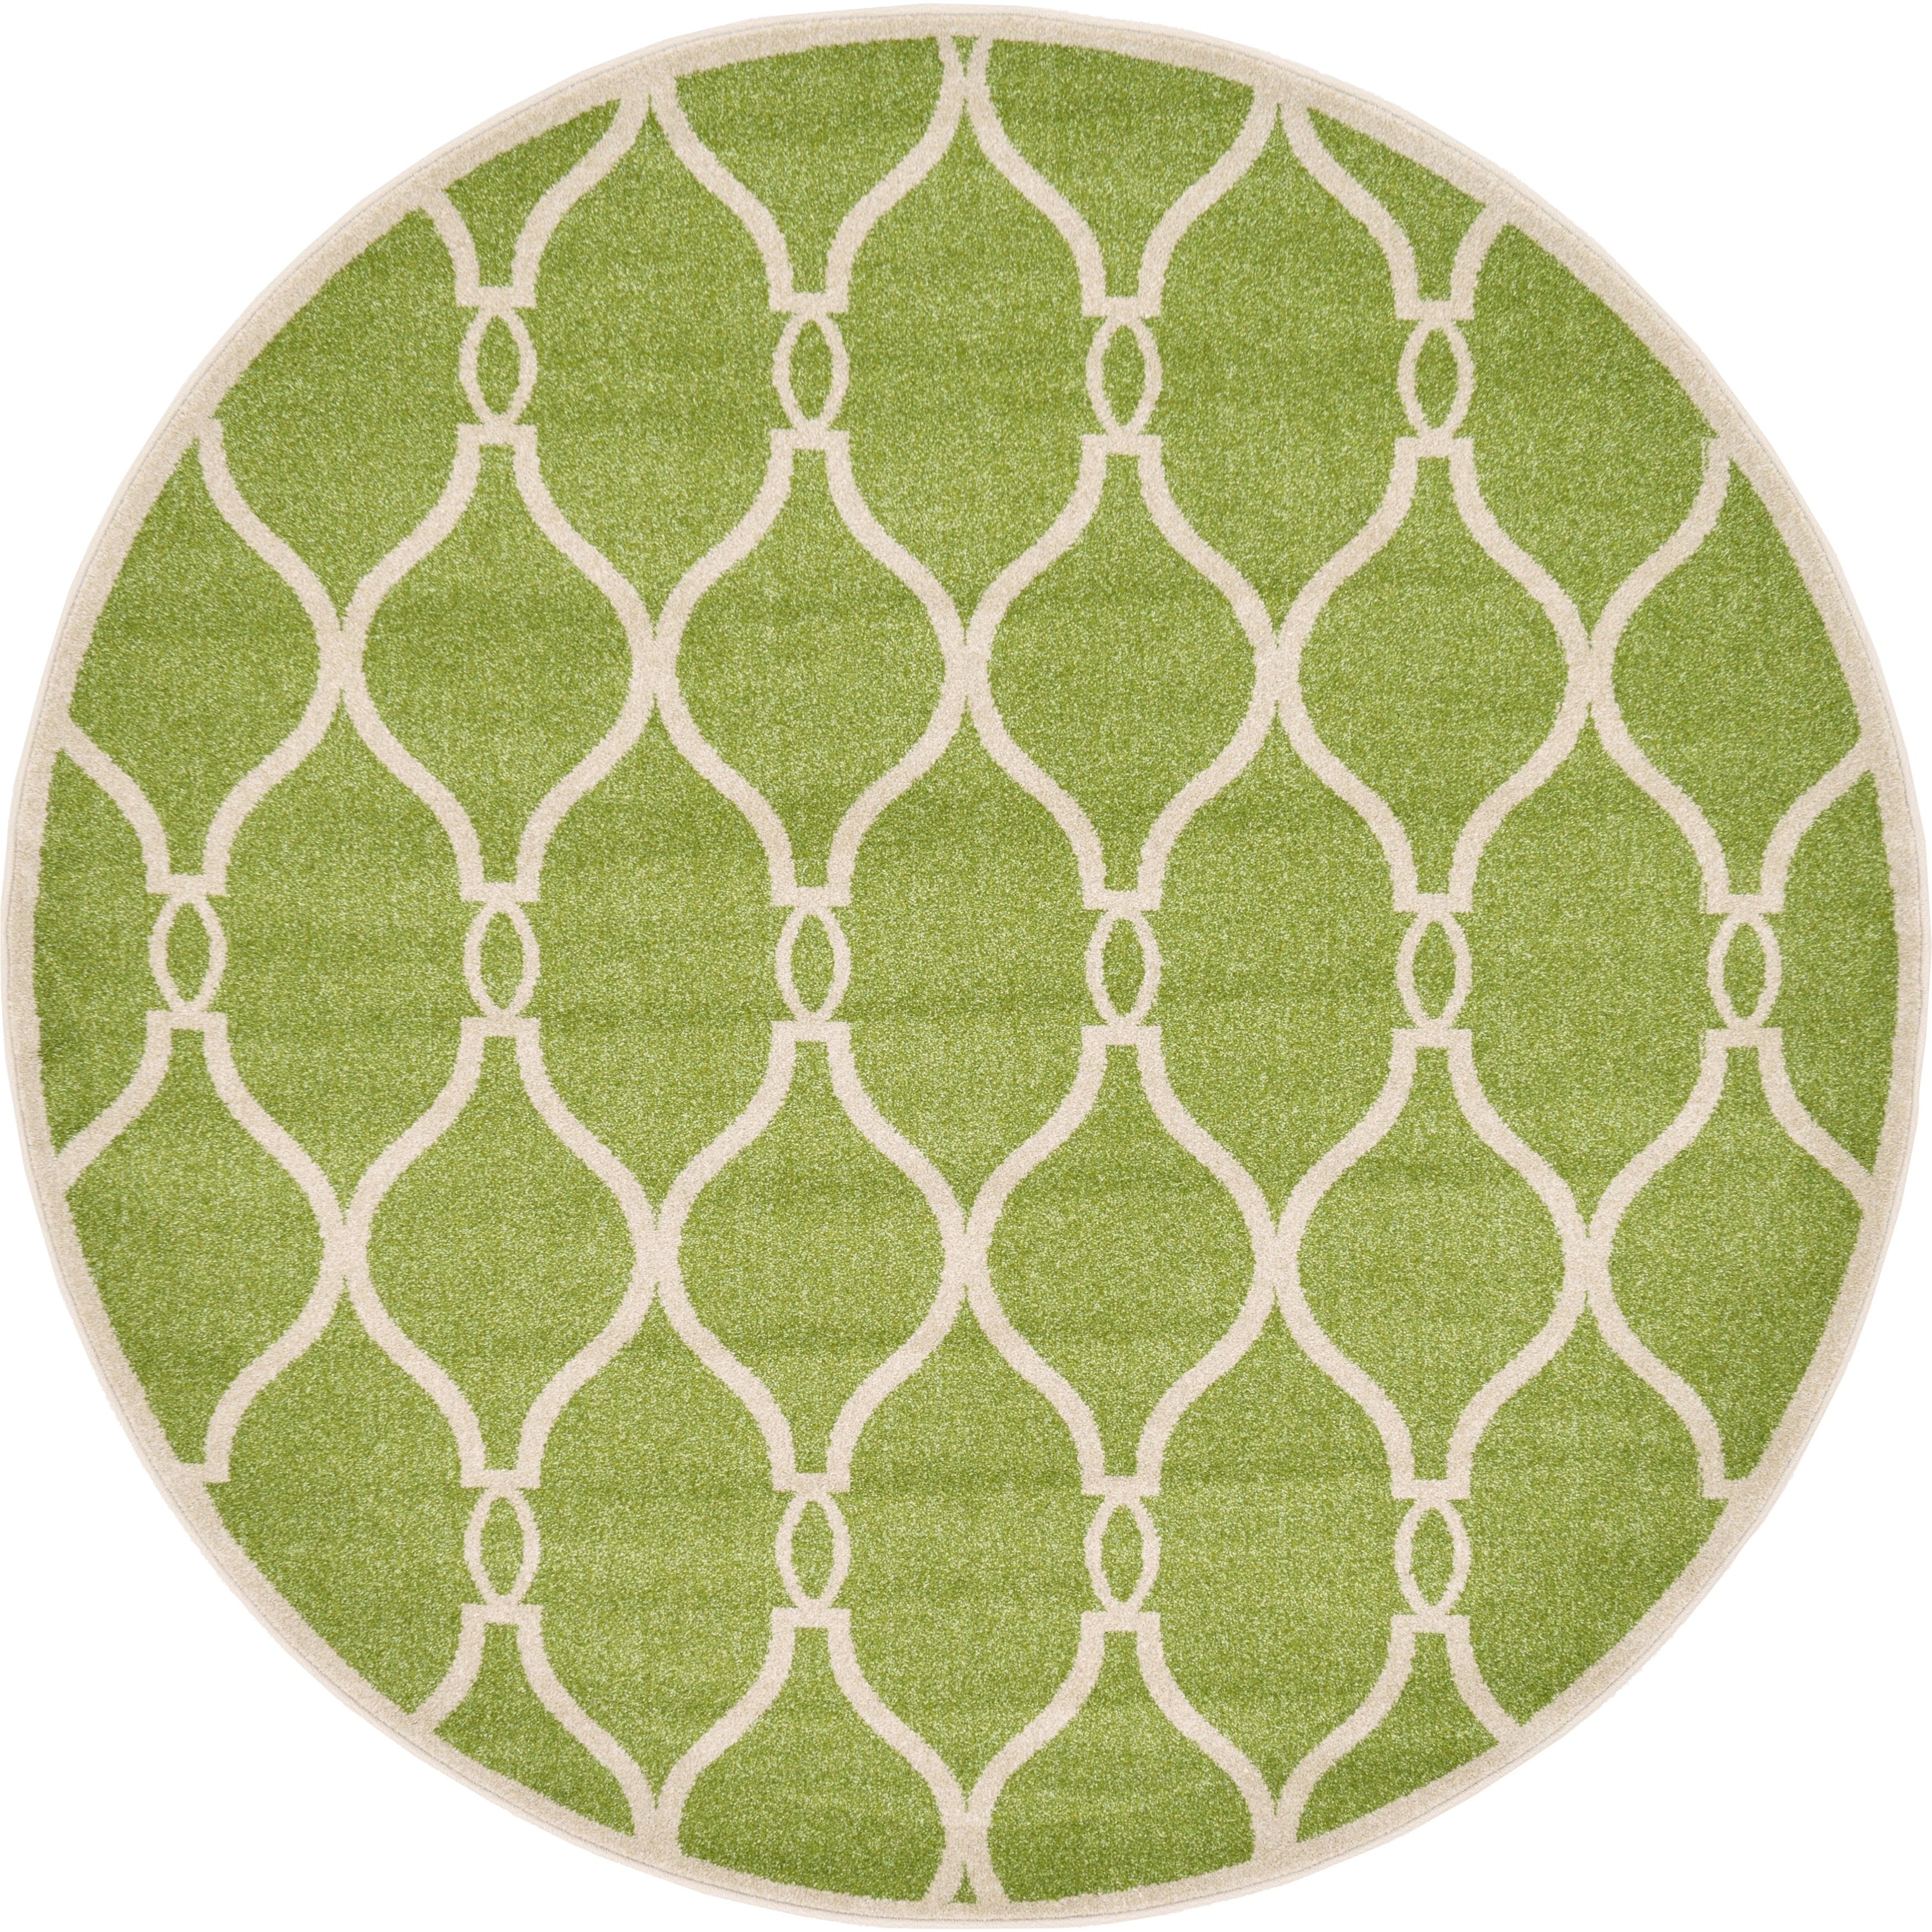 Unique Loom Seattle Trellis Round Rug - 6\' x 6\' - Free Shipping ...